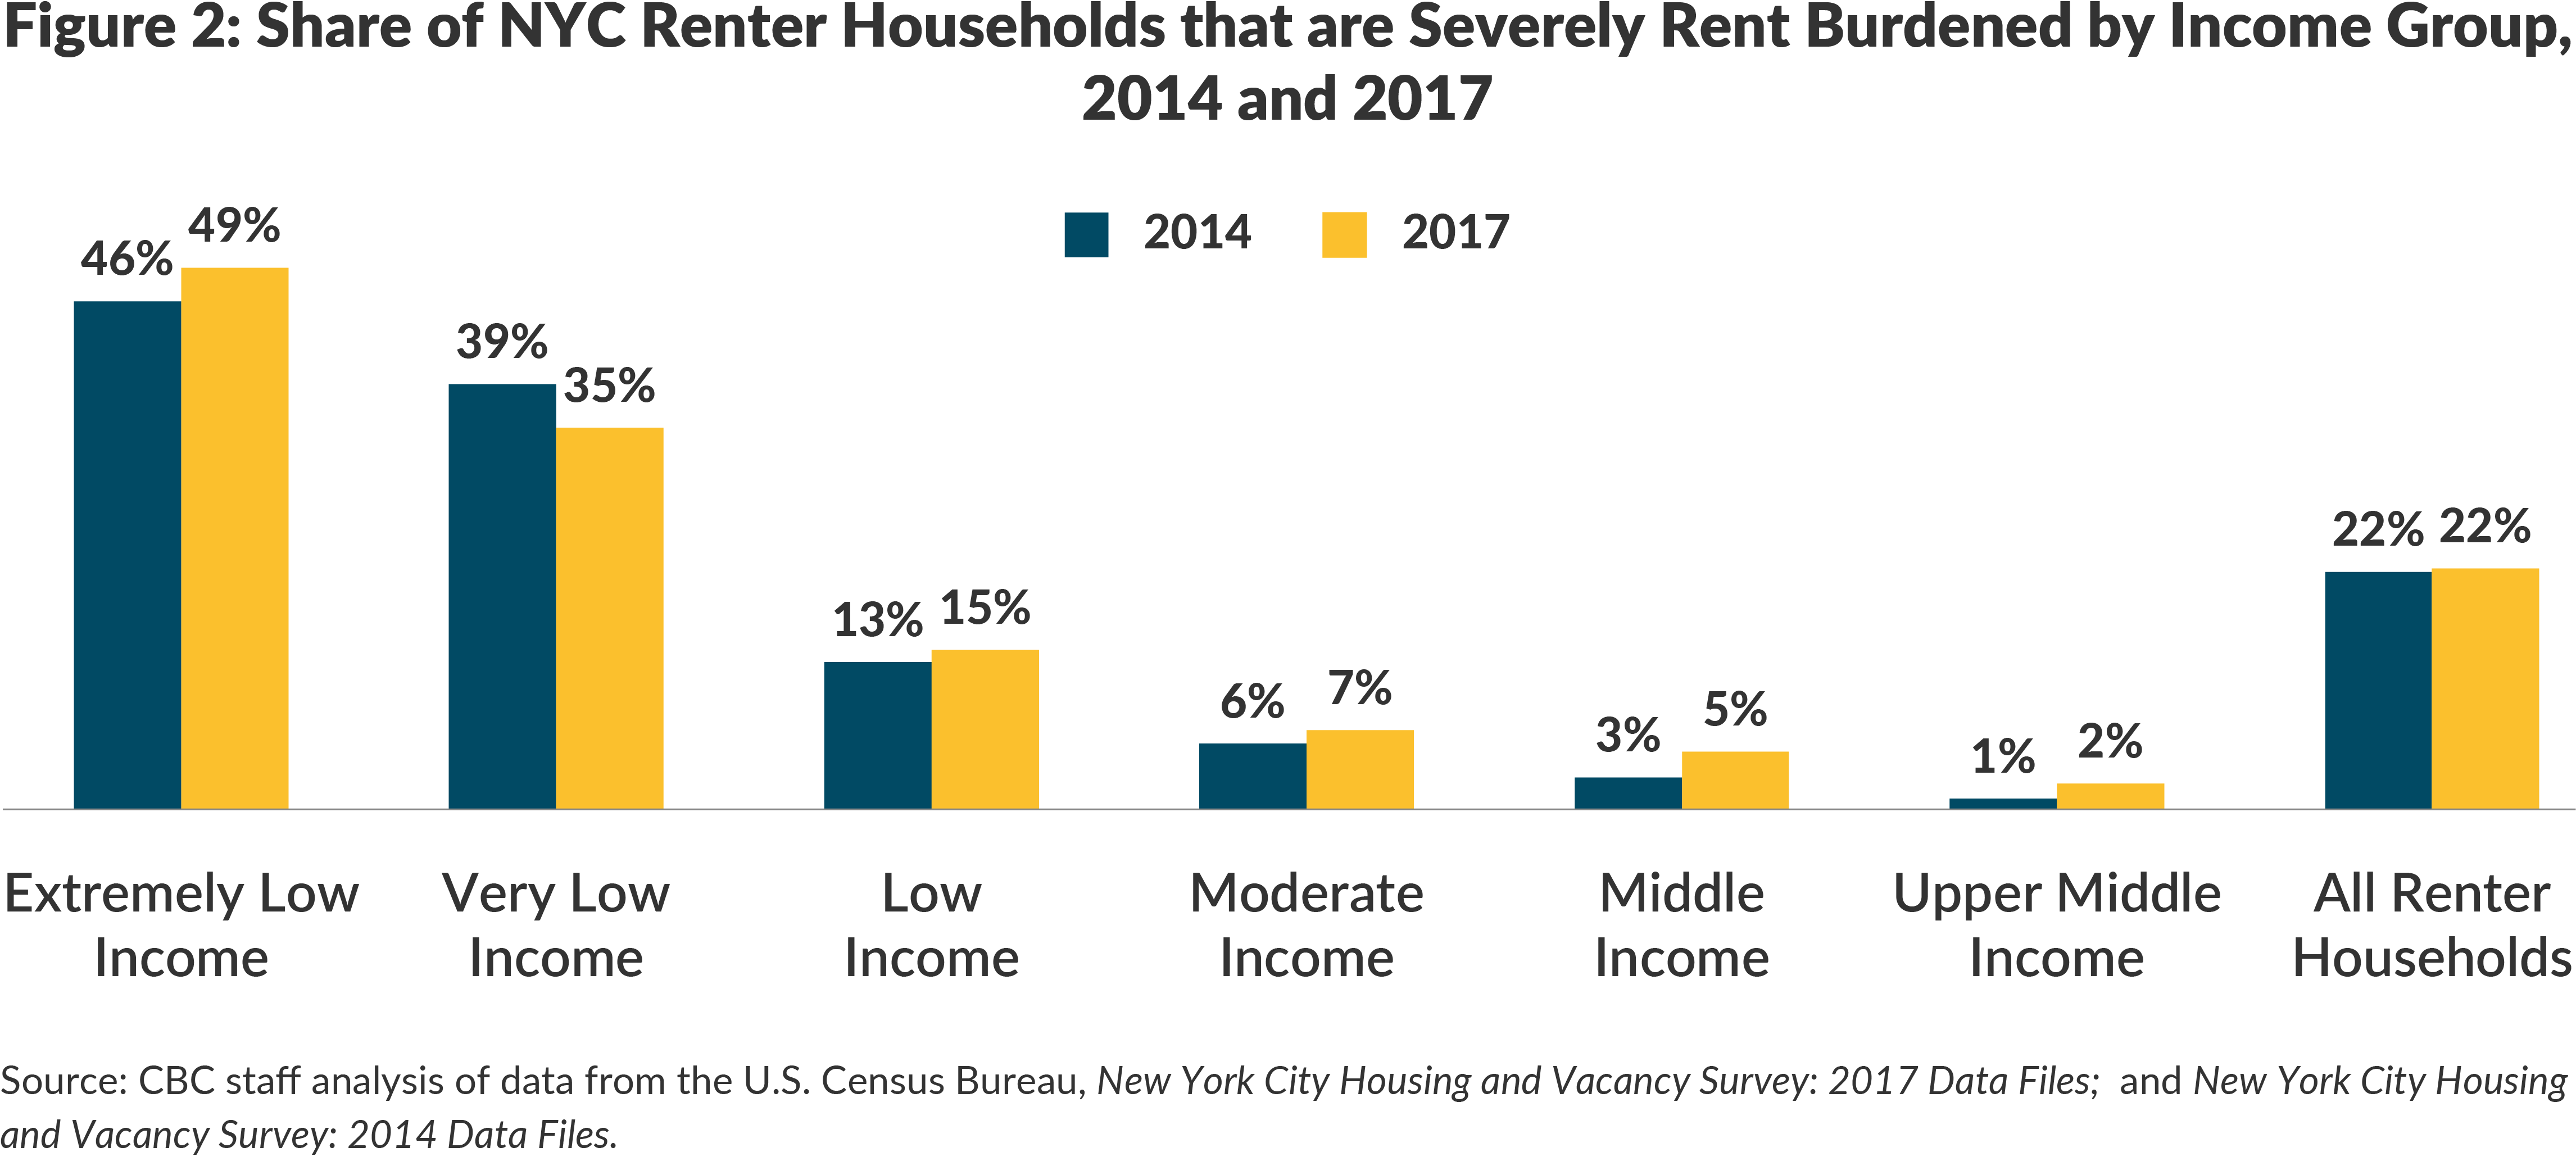 Figure 2. Share of NYC Renter Households that are Severely Rent Burdened by Income Group, 2014 and 2017